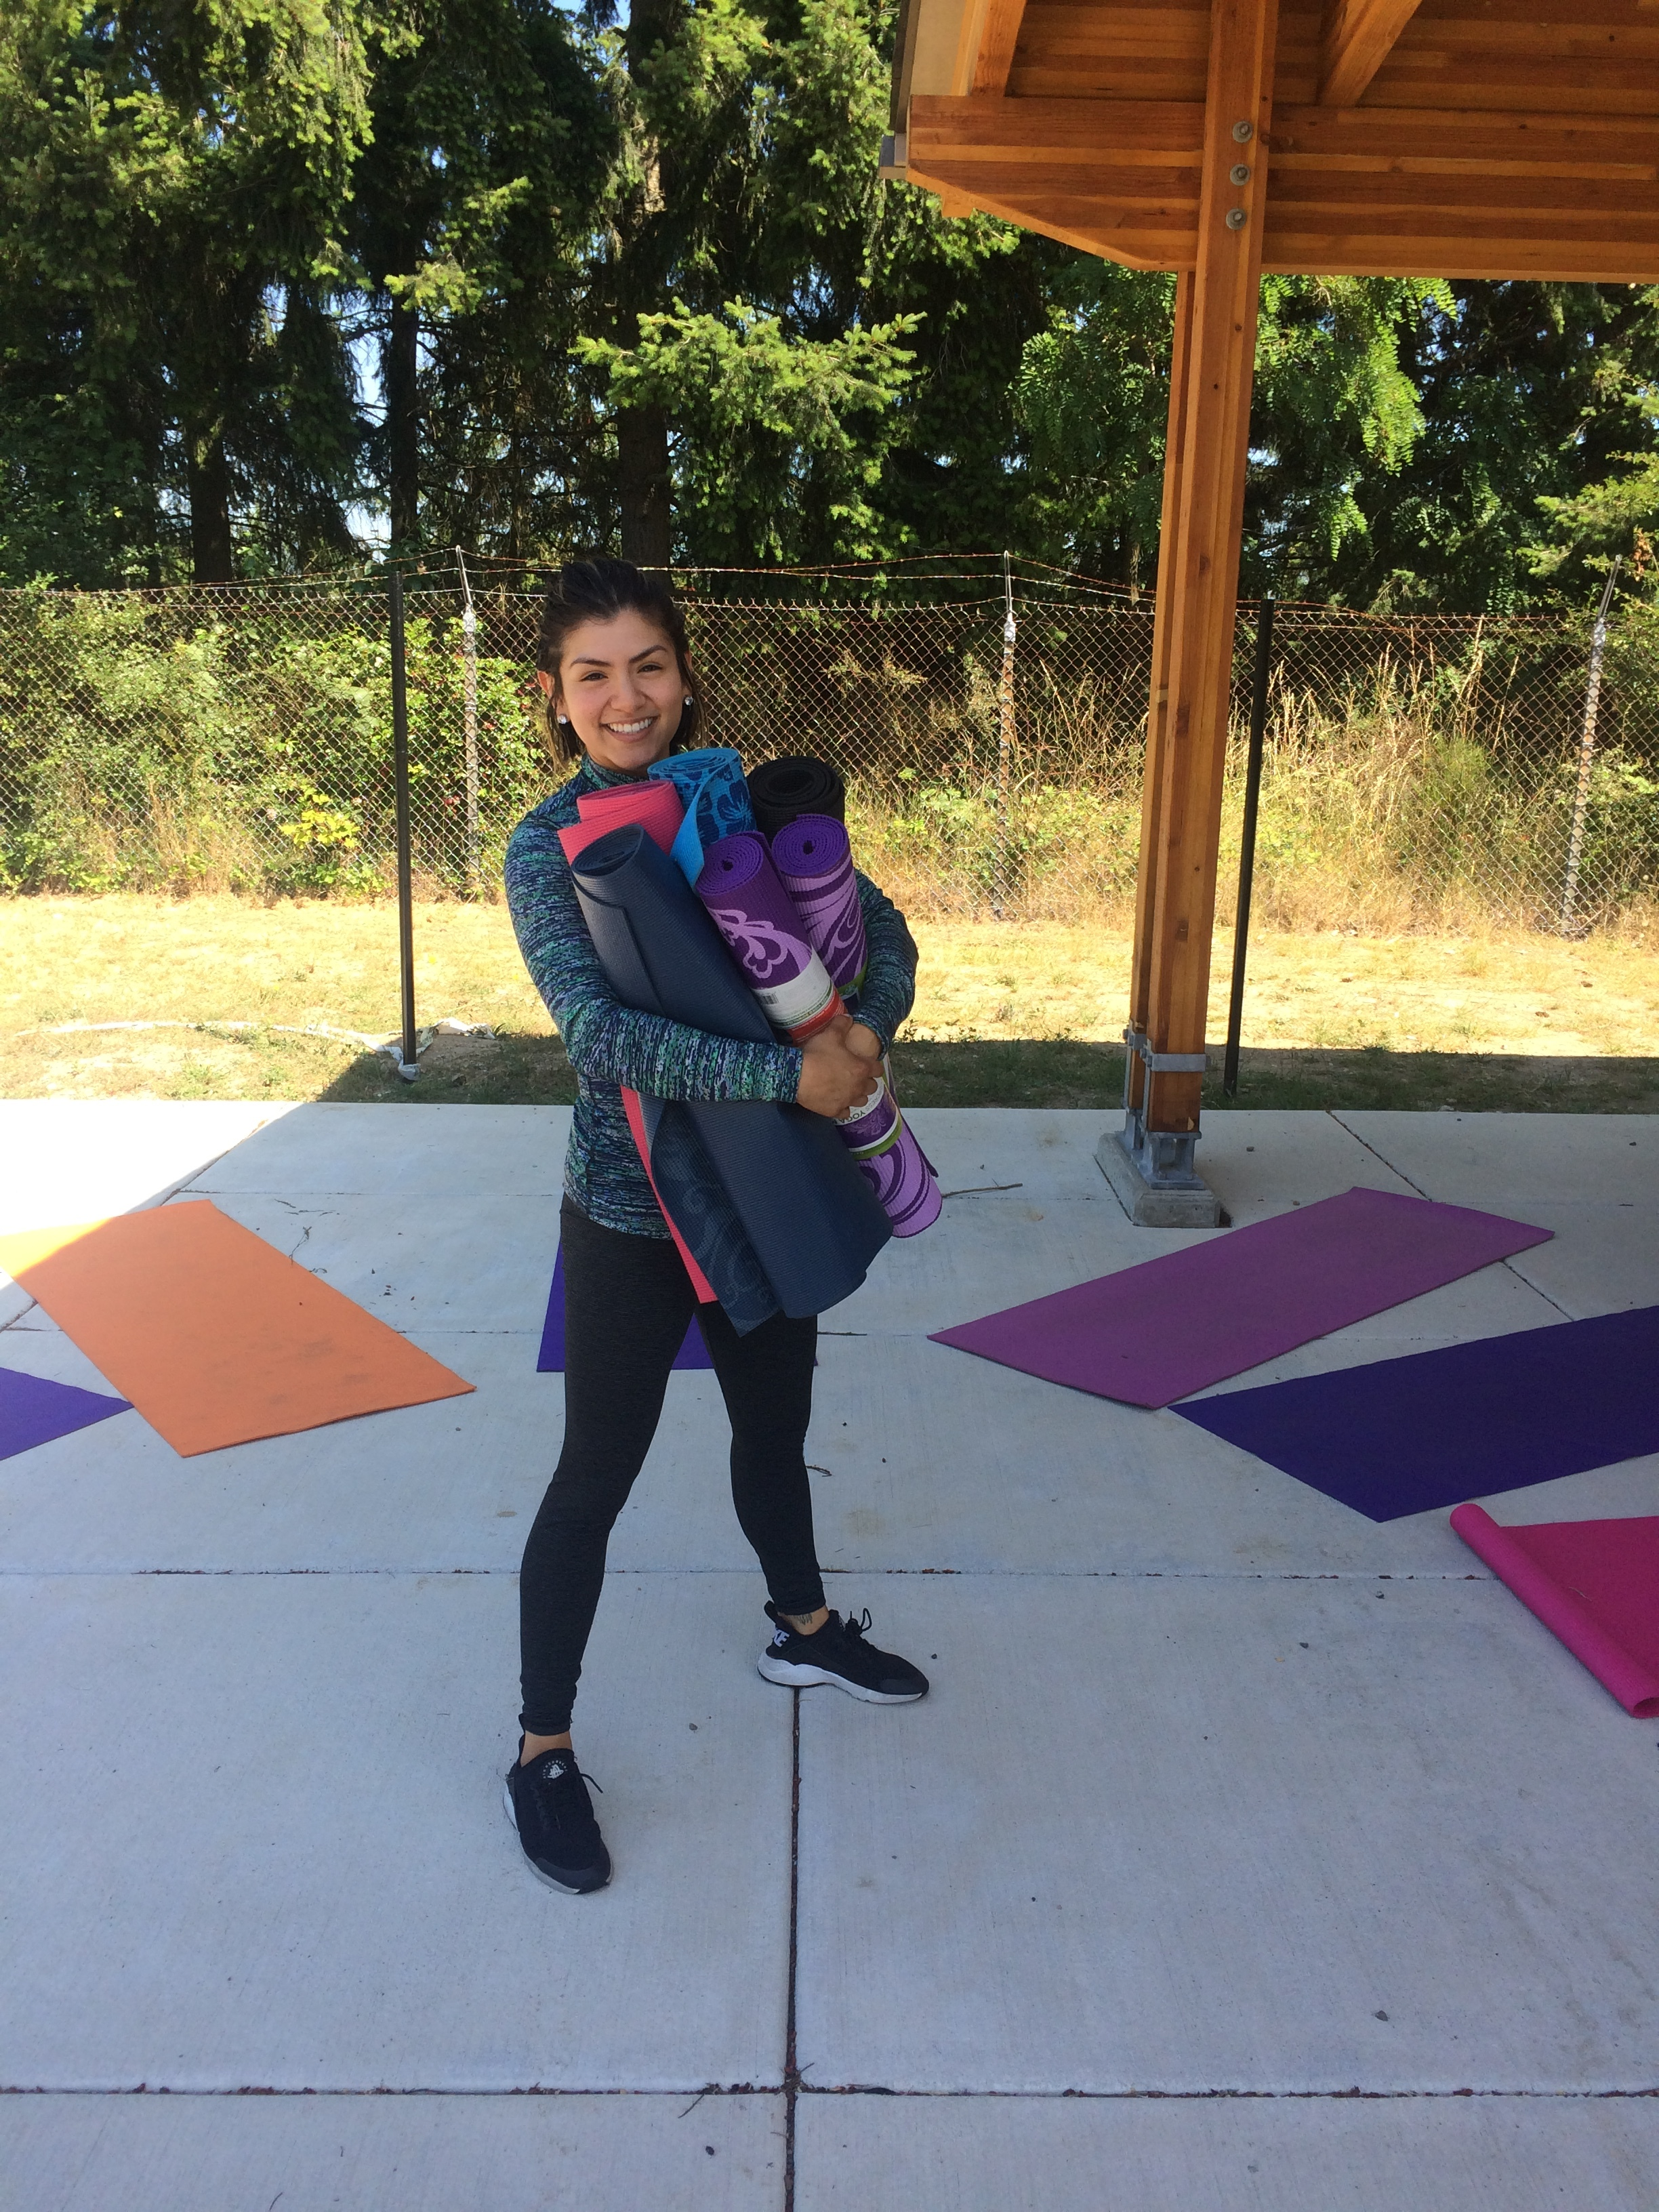 Pictured: Maria with the yoga mats she gifted the children at the Rescue Mission, a refuge for families that have no place to turn.